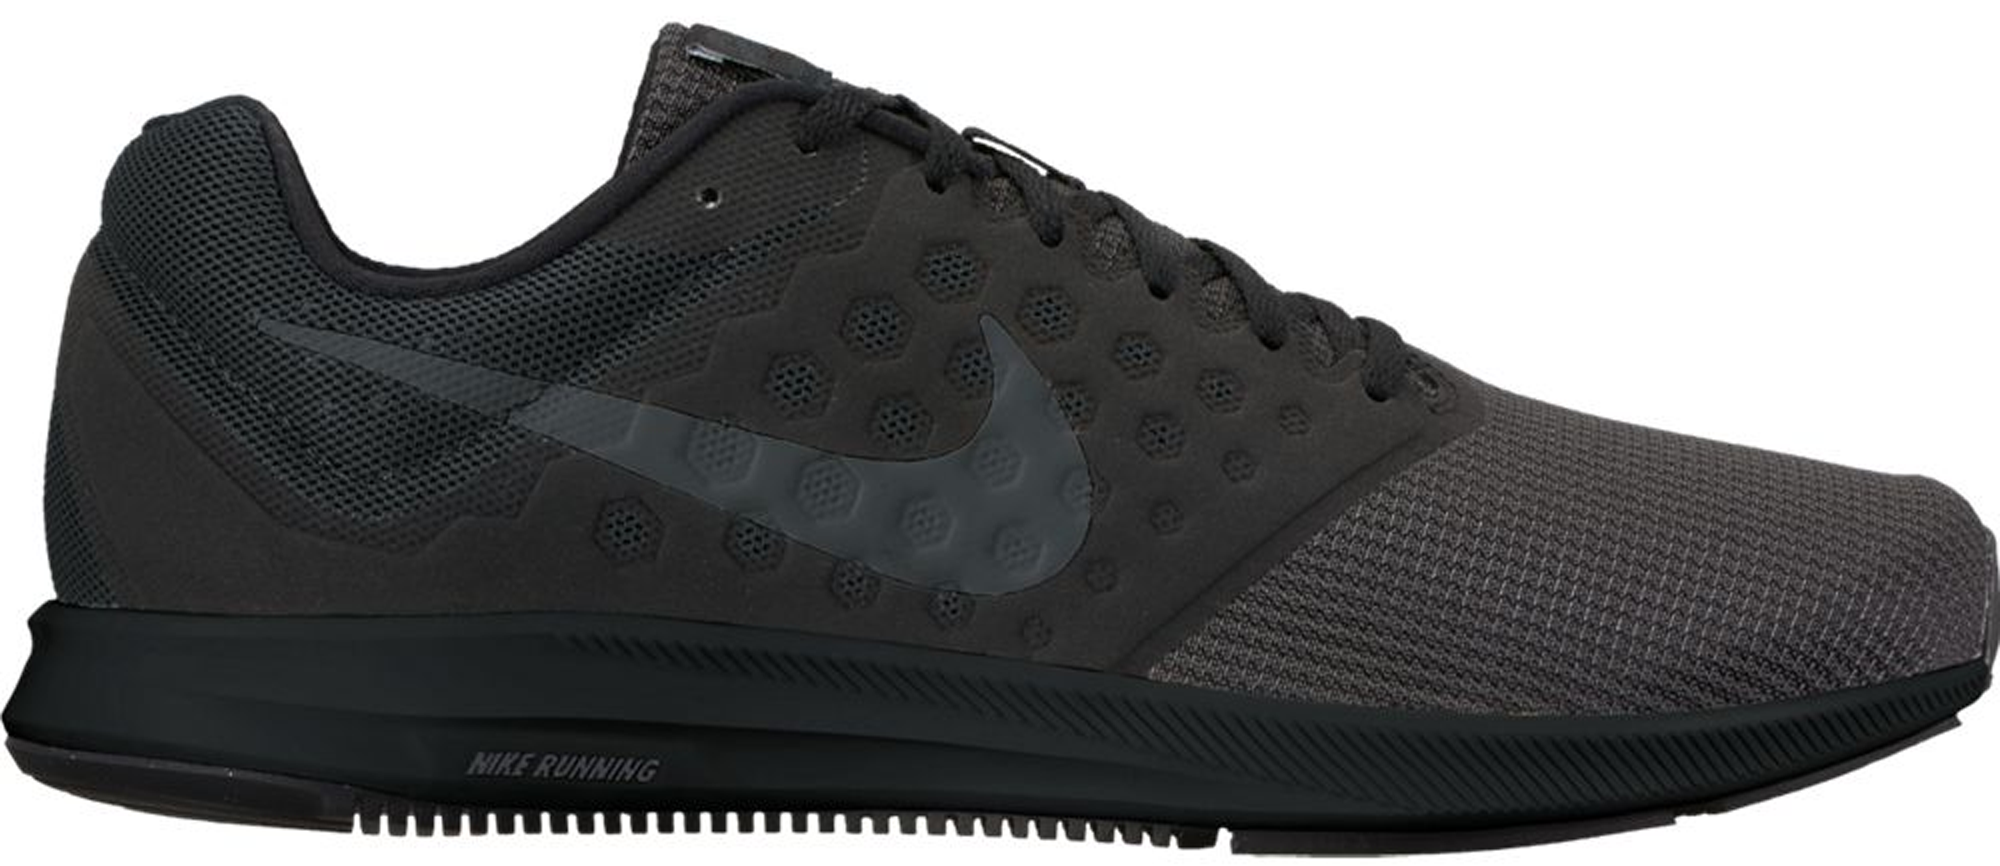 Nike Downshifter 7 Black Anthracite